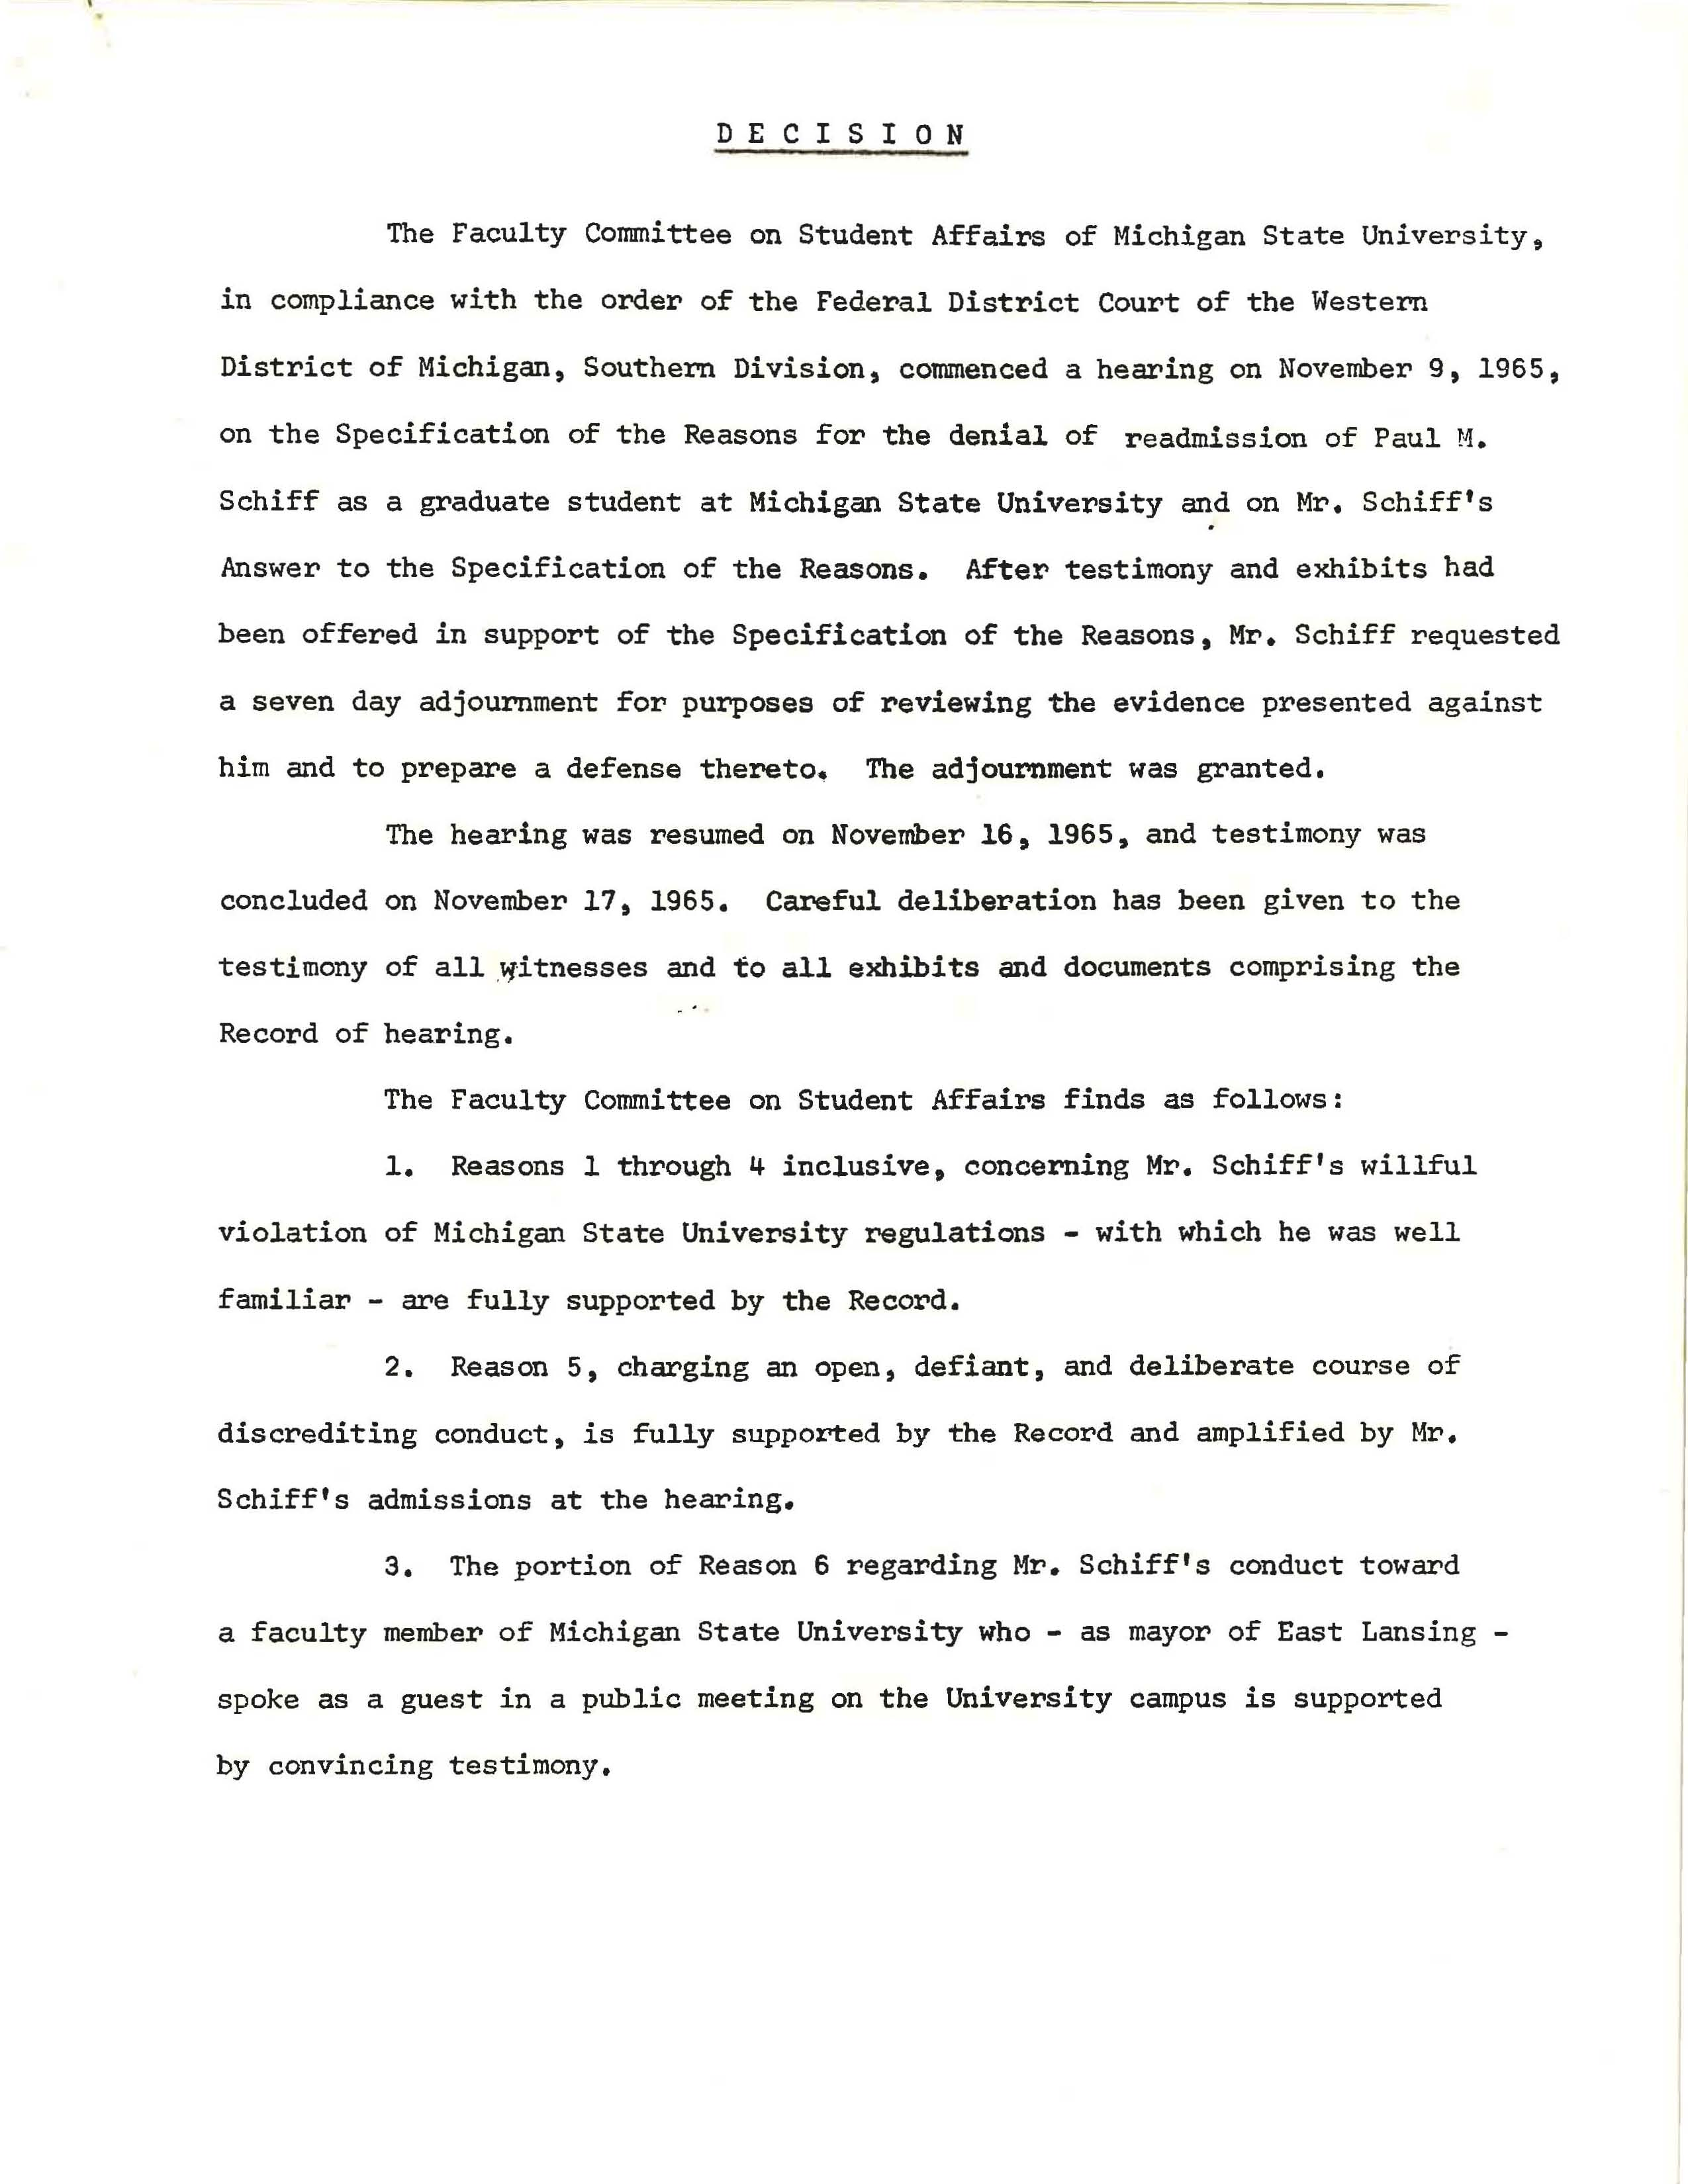 Faculty Committee on Student Affairs decision, 1965